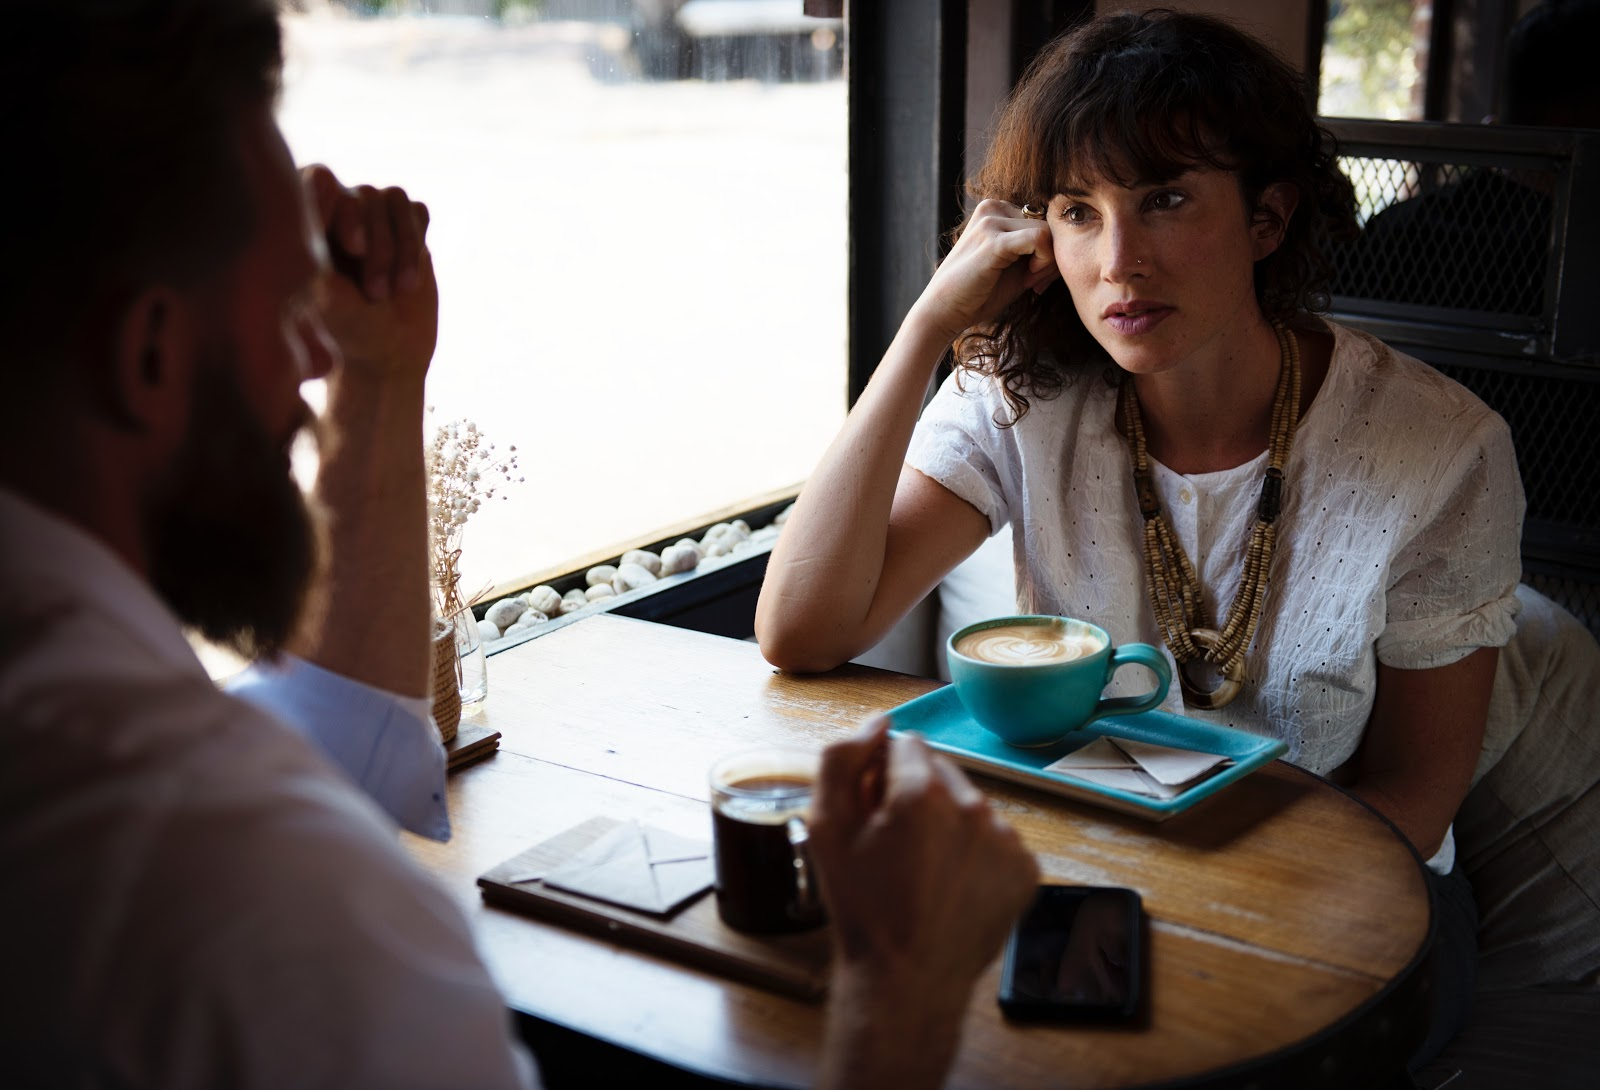 Woman listening to male while drinking coffee